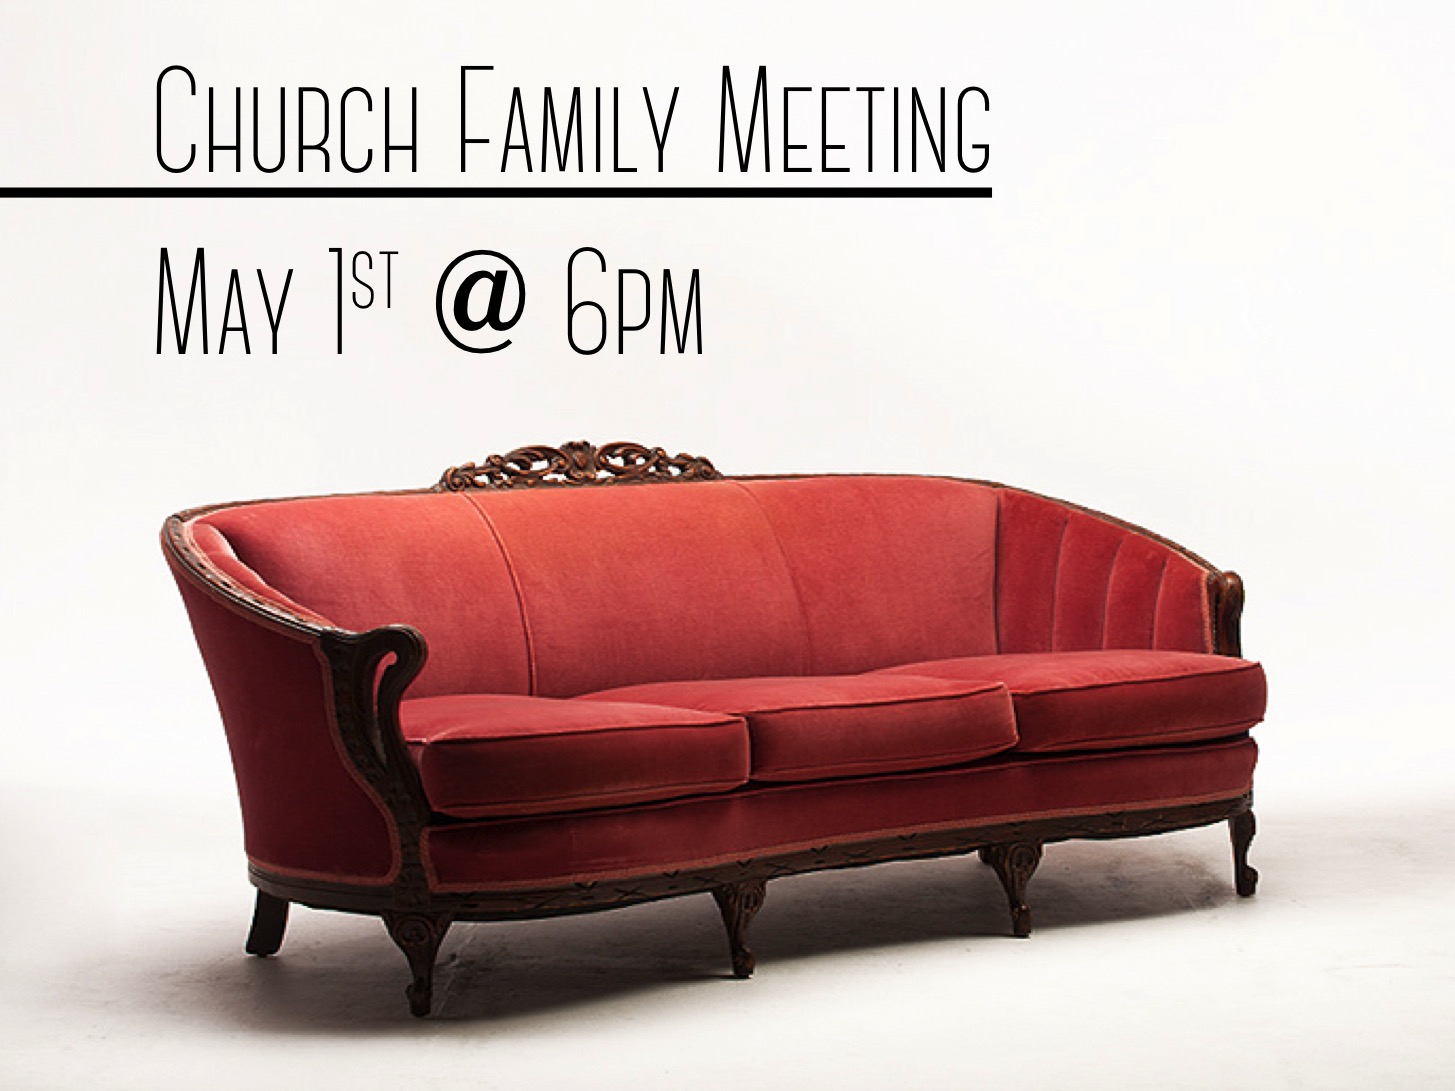 On Sunday, 1 May 2016 we will be having our first Church Family Meeting with Pastor Russ. We will be hearing about some of the changes that have been happening as well as what the church is going to be working towards in the future. You don't want to miss out!